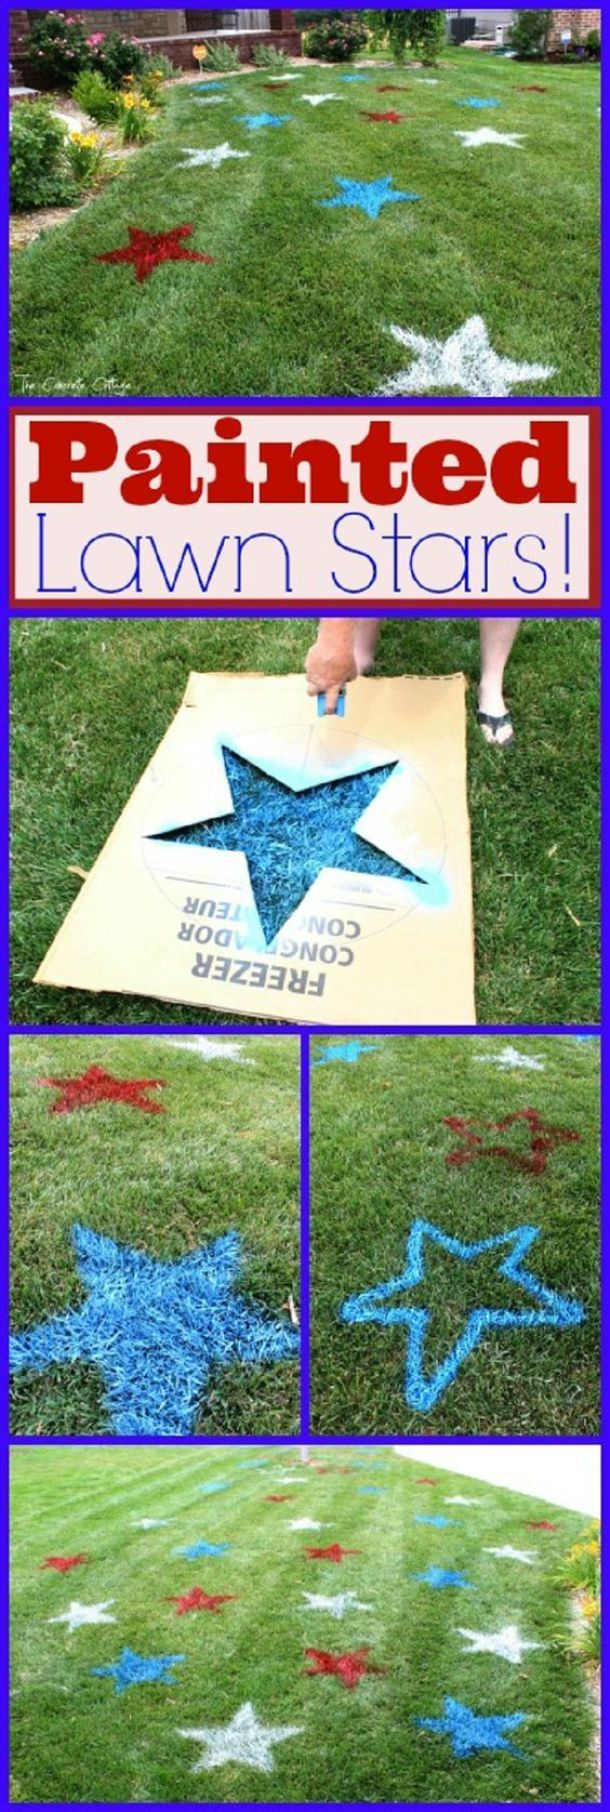 Do it Yourself 4th of July Party - DIY Painted Lawn Stars Patriotic Outdoor Decoration Idea Tutorial via The Concrete Cottage